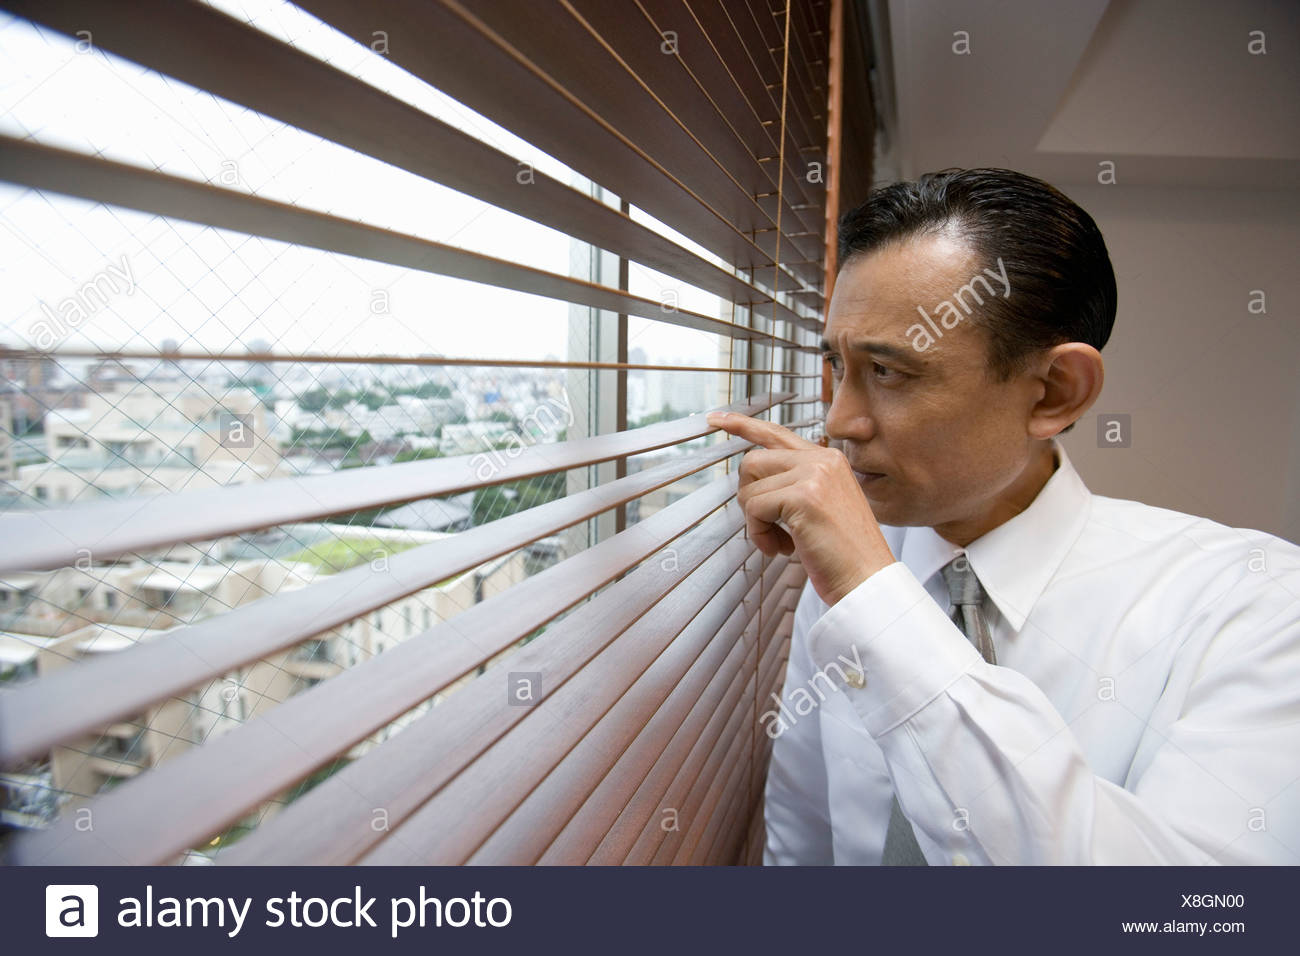 A businessman looking through window blinds - Stock Image